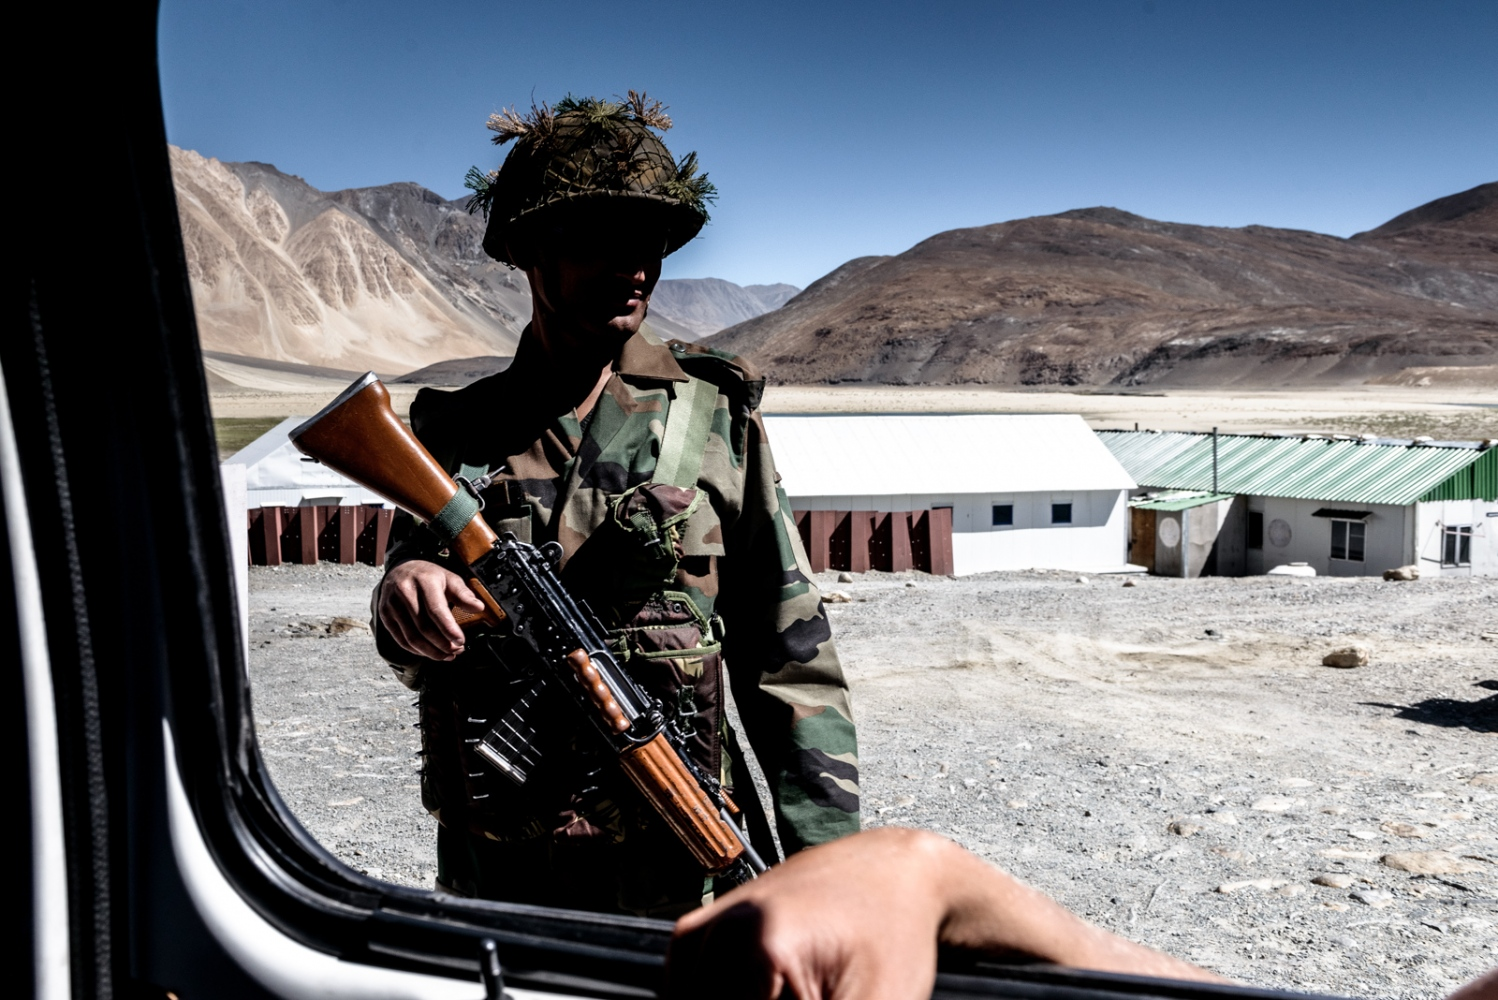 In Ladakh, there is a very noticeable military presence all throughout the region, with bases, checkpoints, convoys, and armed soldiers to be found almost anywhere, but often in the middle of nowhere. For virtue of being nestled in between the borders of Pakistan and China, Ladakh has become a region of great strategic importance and point of tension between India and the neighboring powers.